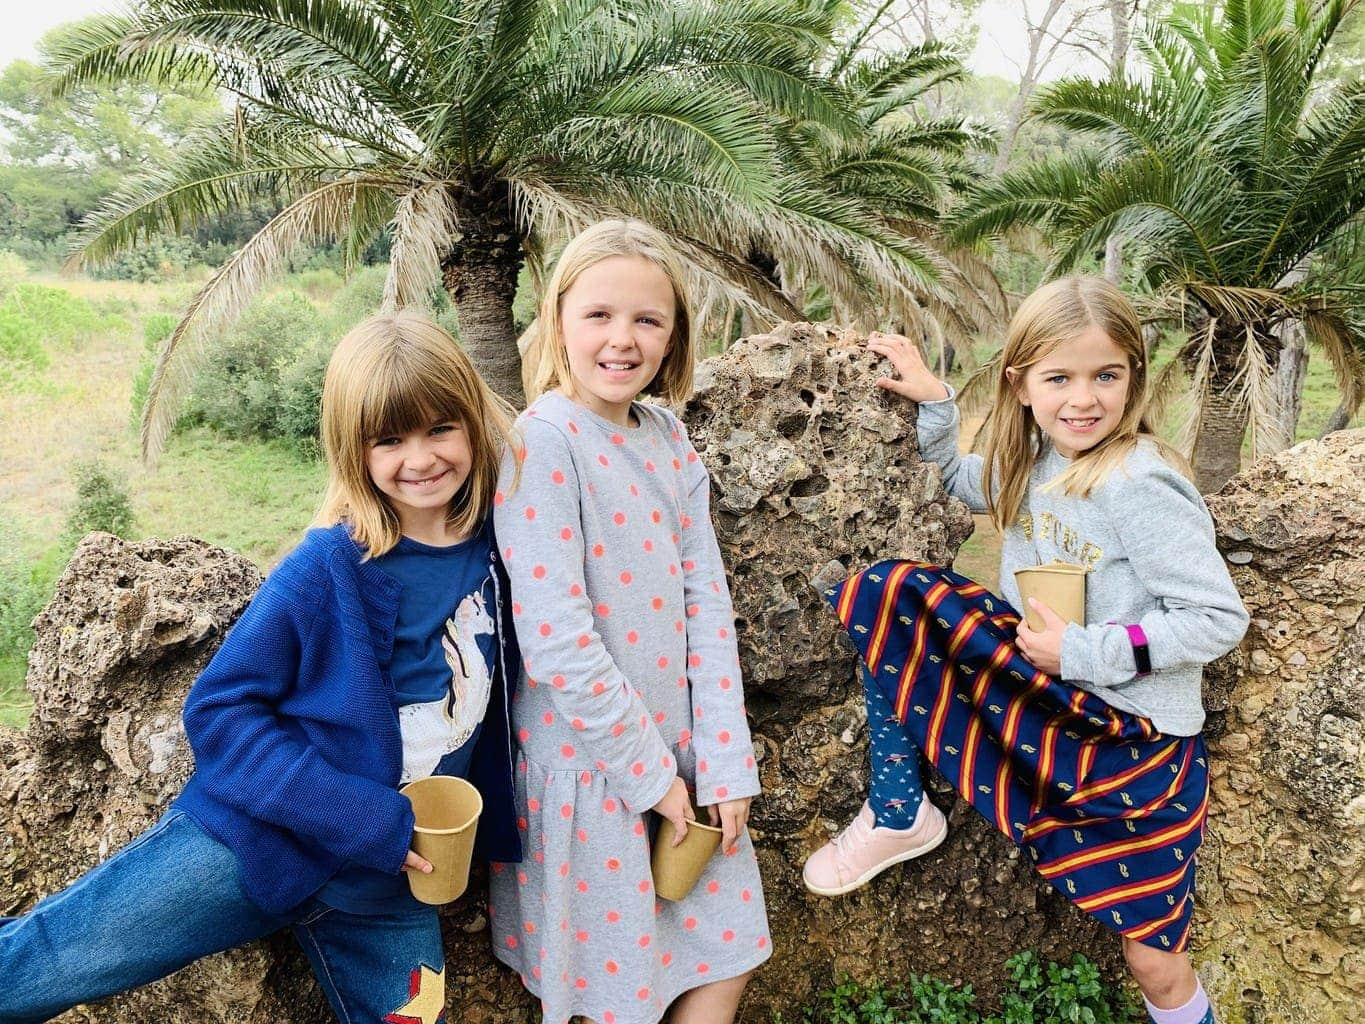 Parc Sama, Cambrills with Kids | Spain